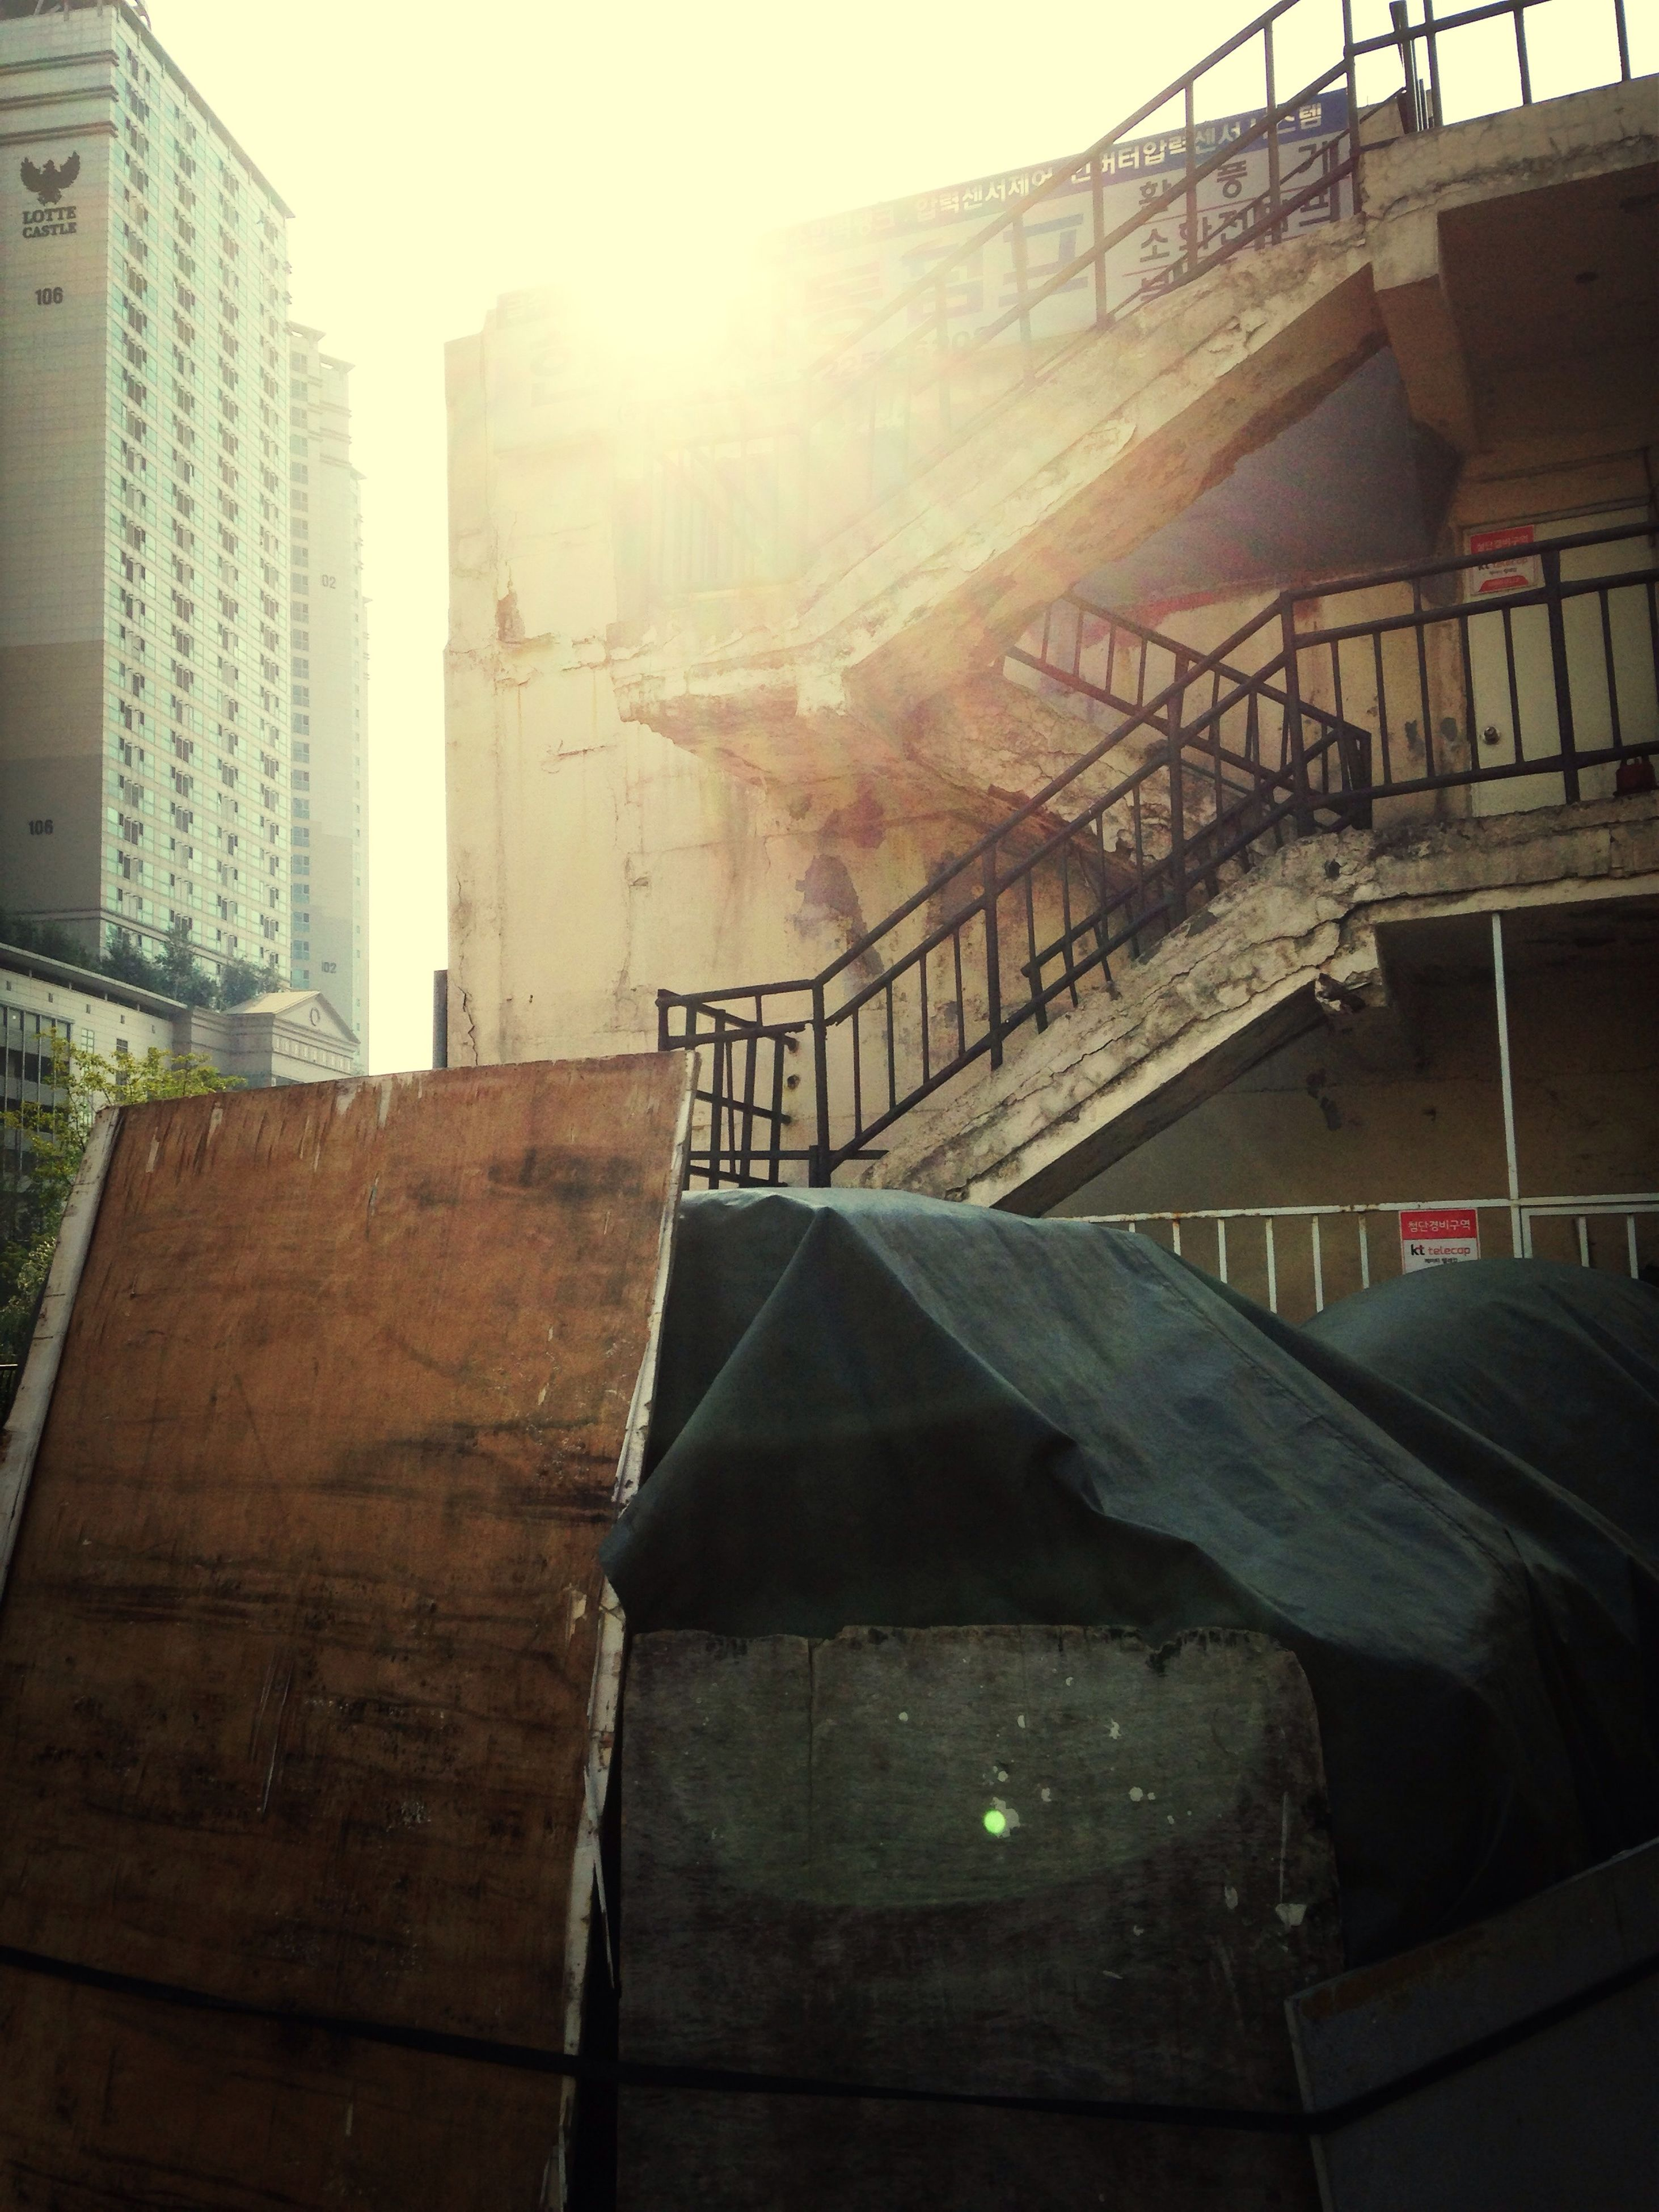 architecture, built structure, building exterior, sunlight, sunbeam, sun, low angle view, building, railing, lens flare, sunny, sky, city, day, staircase, no people, steps, house, outdoors, shadow